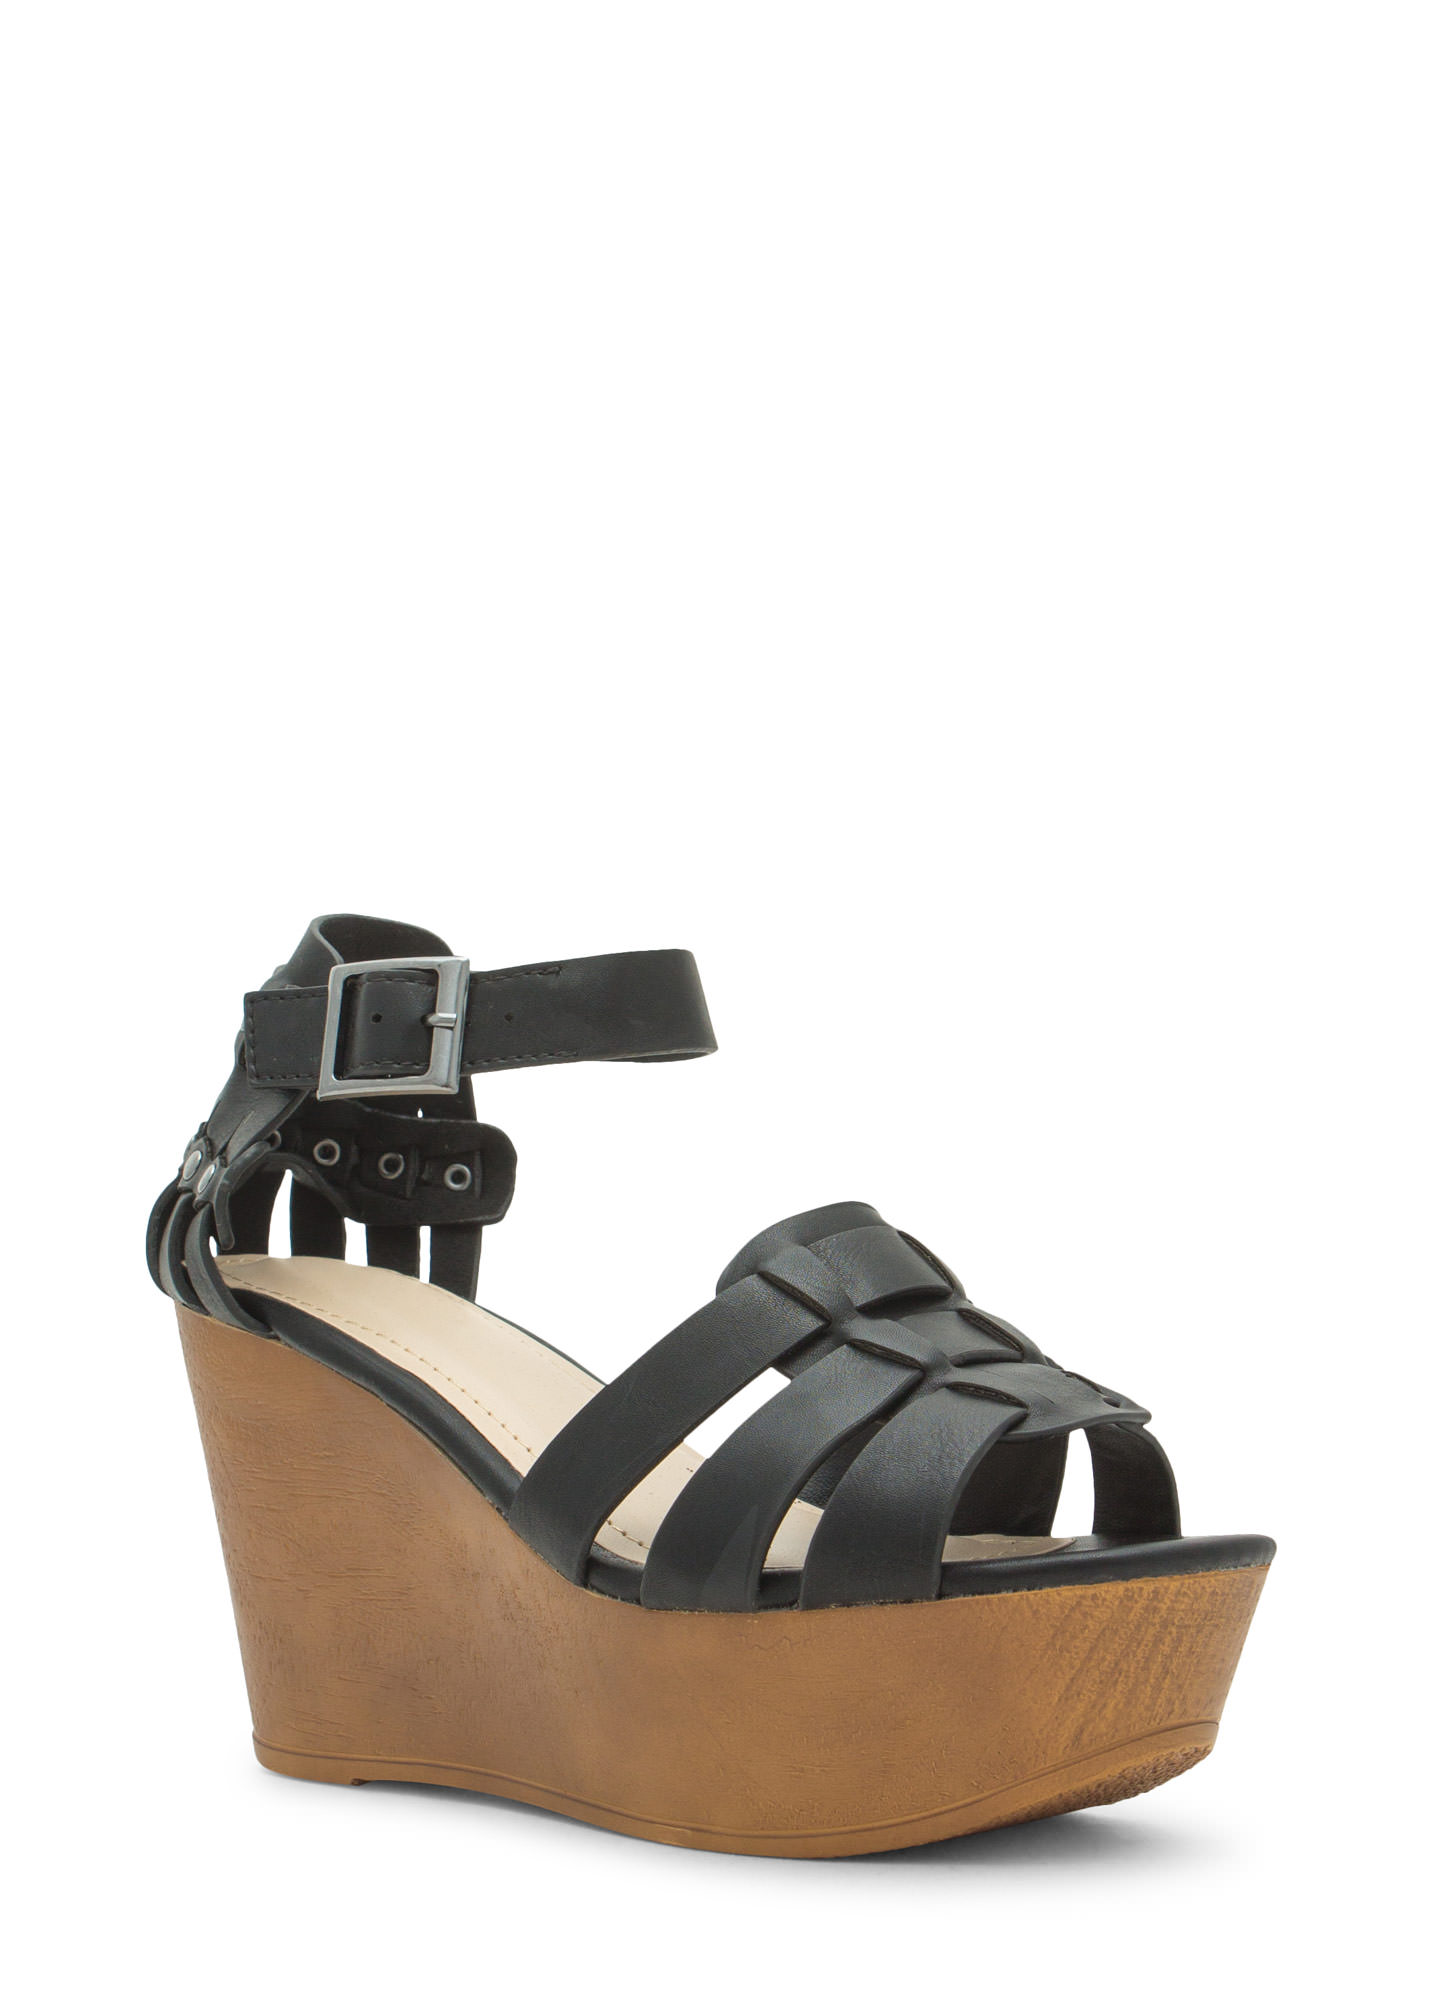 Tri-Strap Caged Platform Wedges BLACK